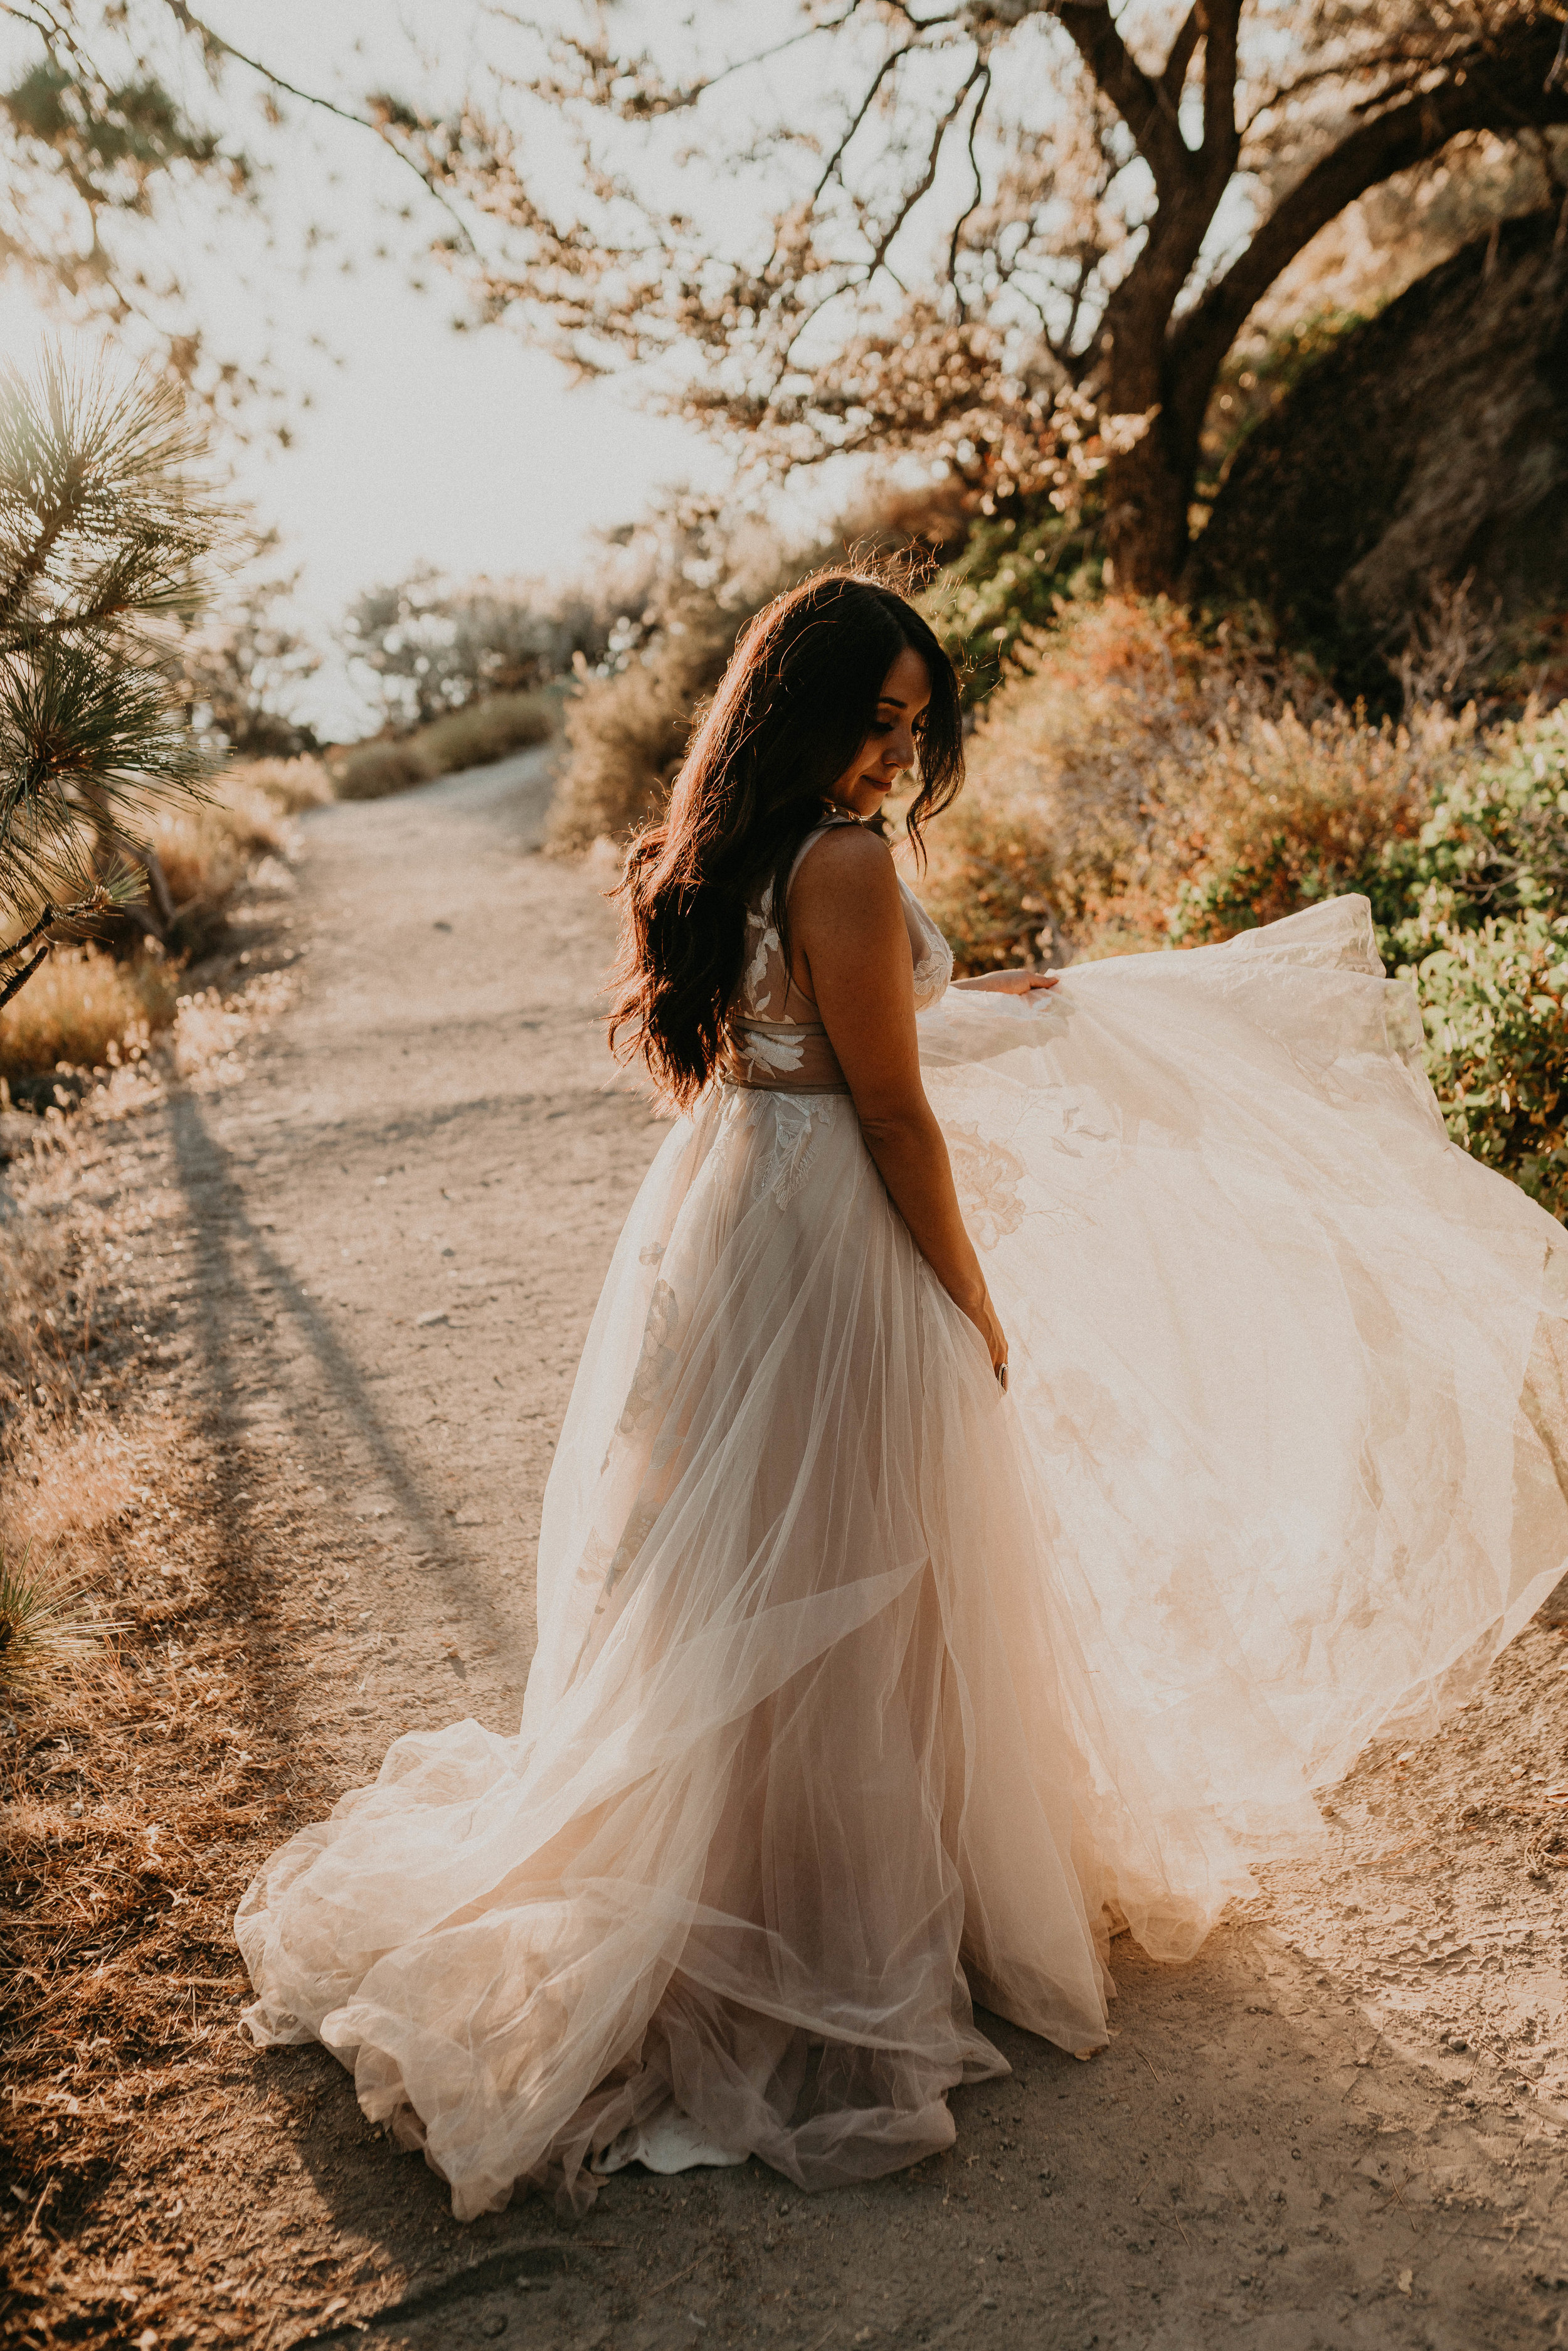 lake tahoe bride silhouette sunset wedding gown dress beautiful